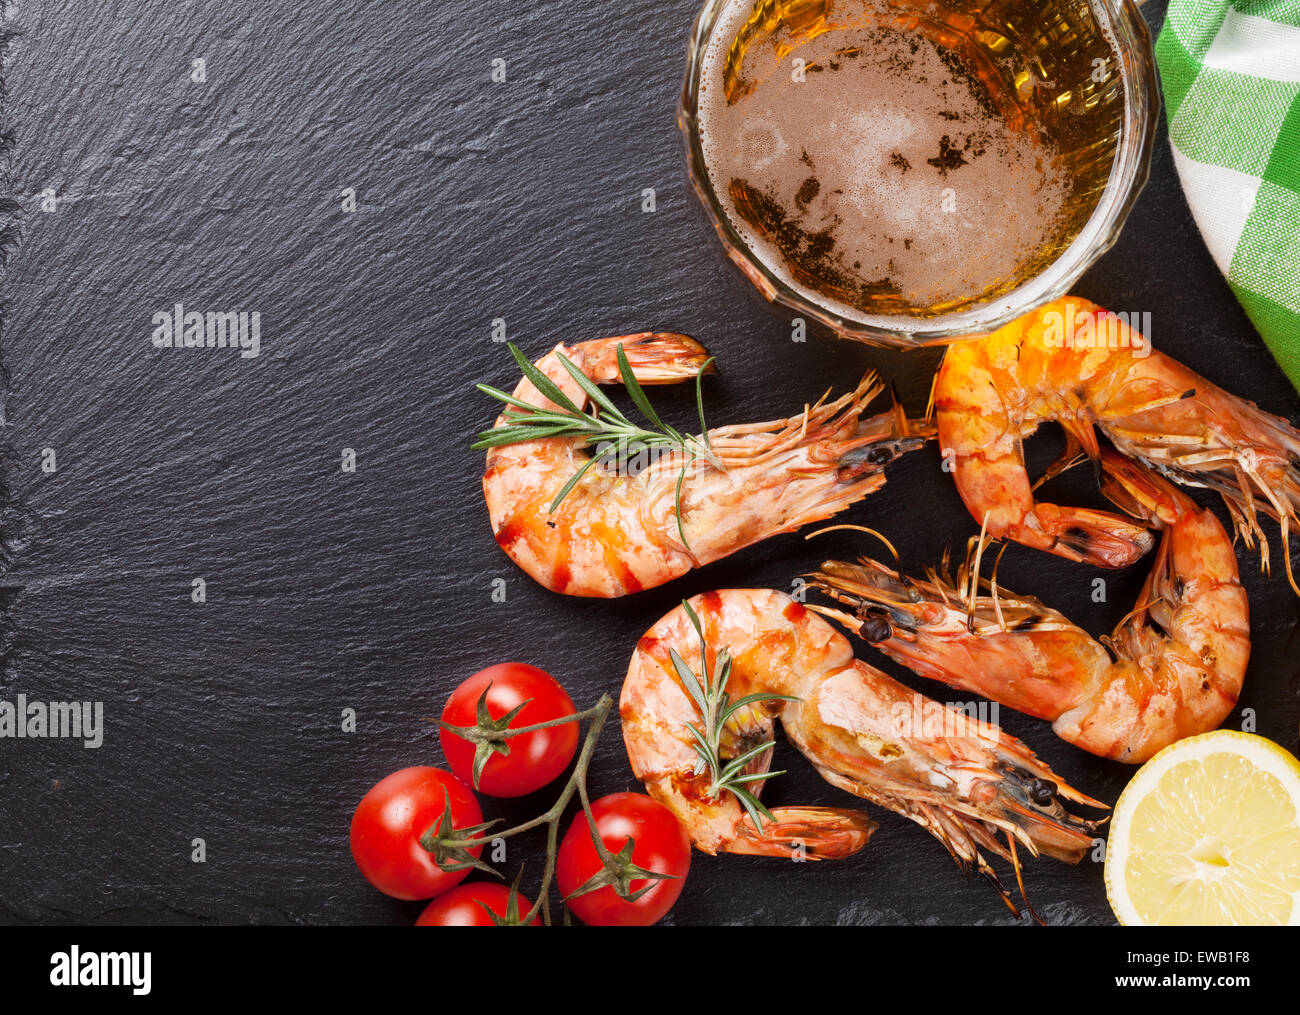 Beer mug and grilled shrimps on stone plate. Top view with copy space - Stock Image